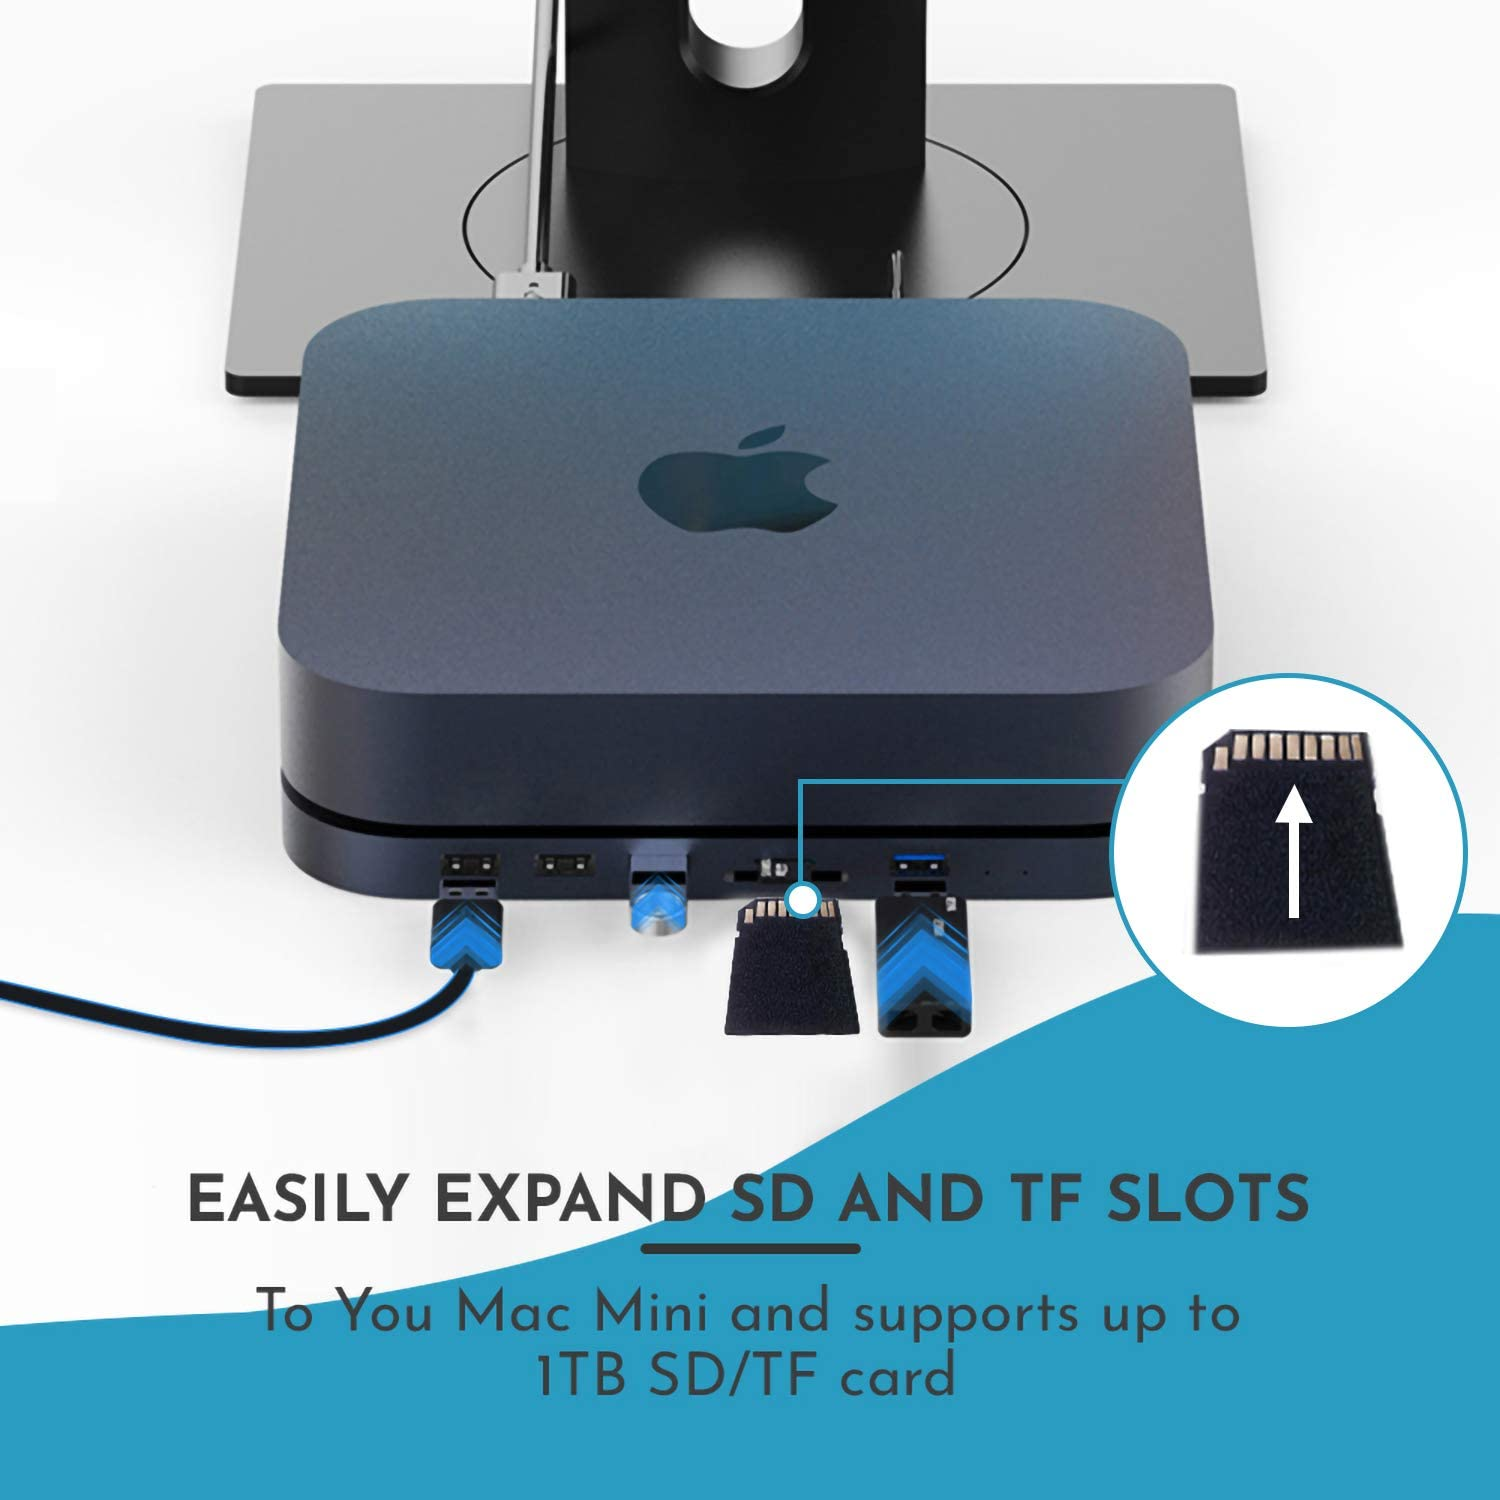 USB 3.0 Port Evolve 7-in-1 Type-C Docking Station with a Solid Enclosure for 2.5 SATA SSD//HDD Grey USB 2.0 Port and SD//TF Card Reader Compatible with Mac Mini2018//2020/&M1 and MacBook Pro.